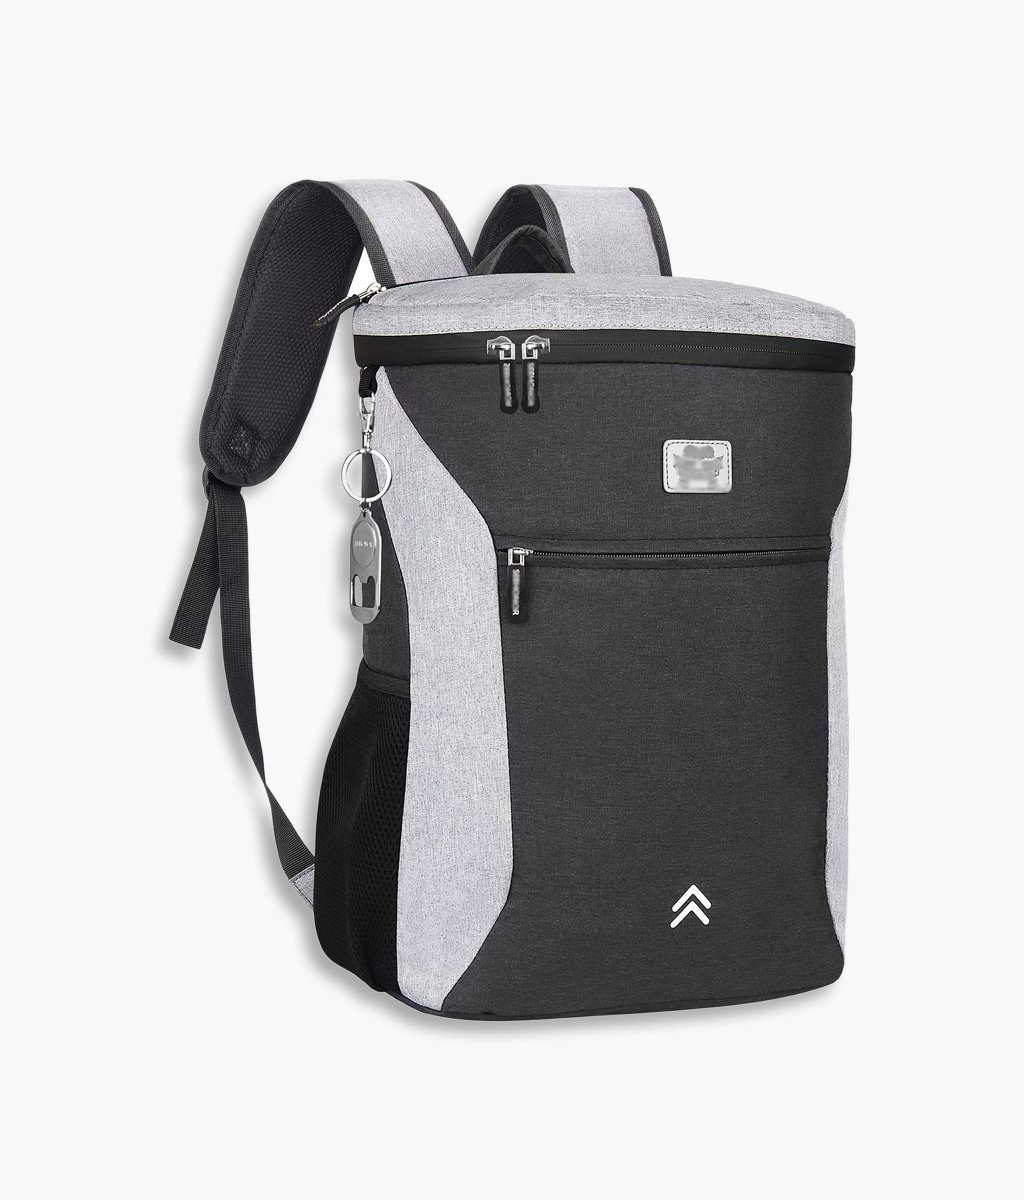 Leakproof Soft Cooler Backpack Beach Camping